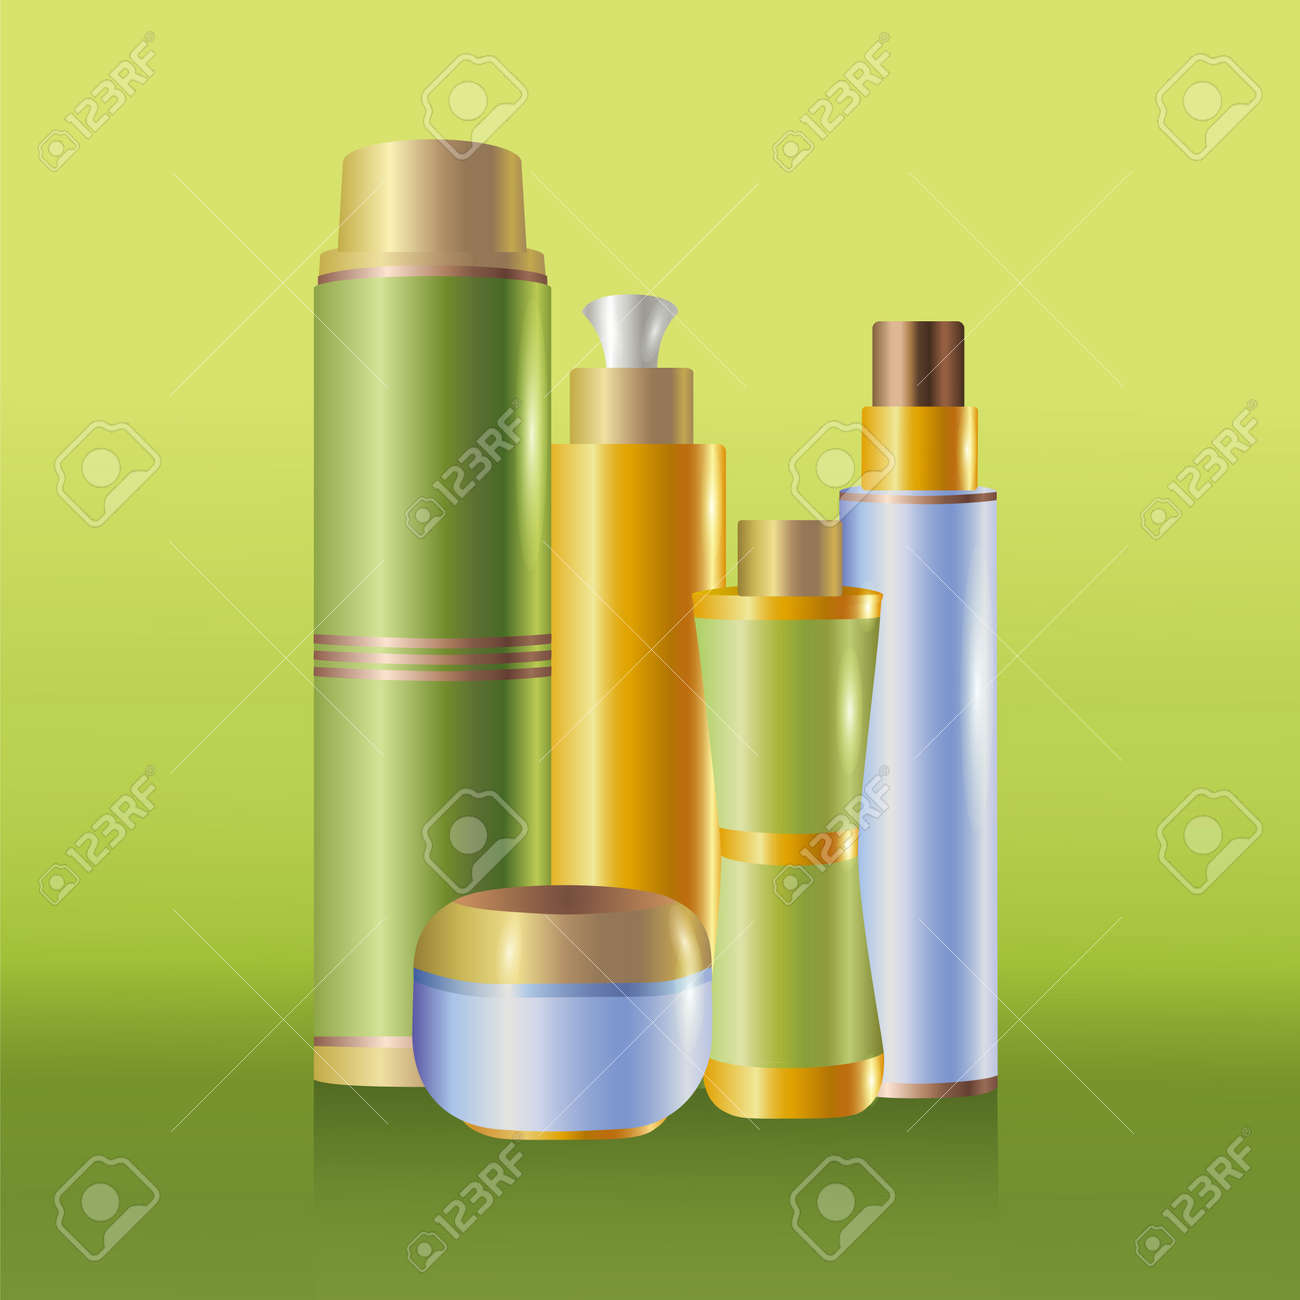 Set of skin care cosmetics, isolated on green background, vector illustration Stock Vector - 18286365